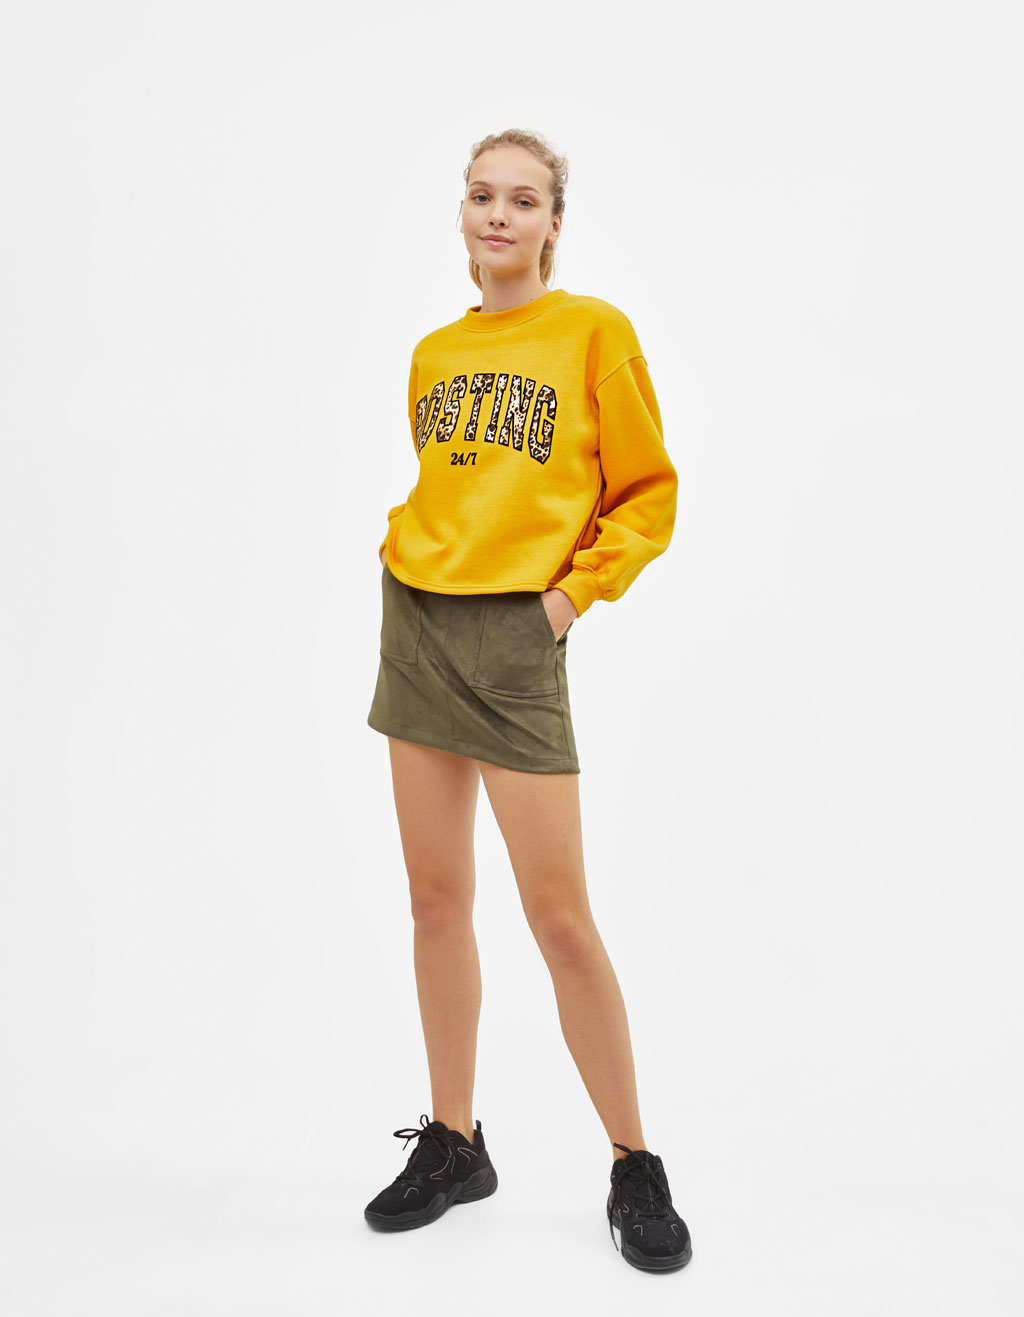 Sweatshirt with slogan print